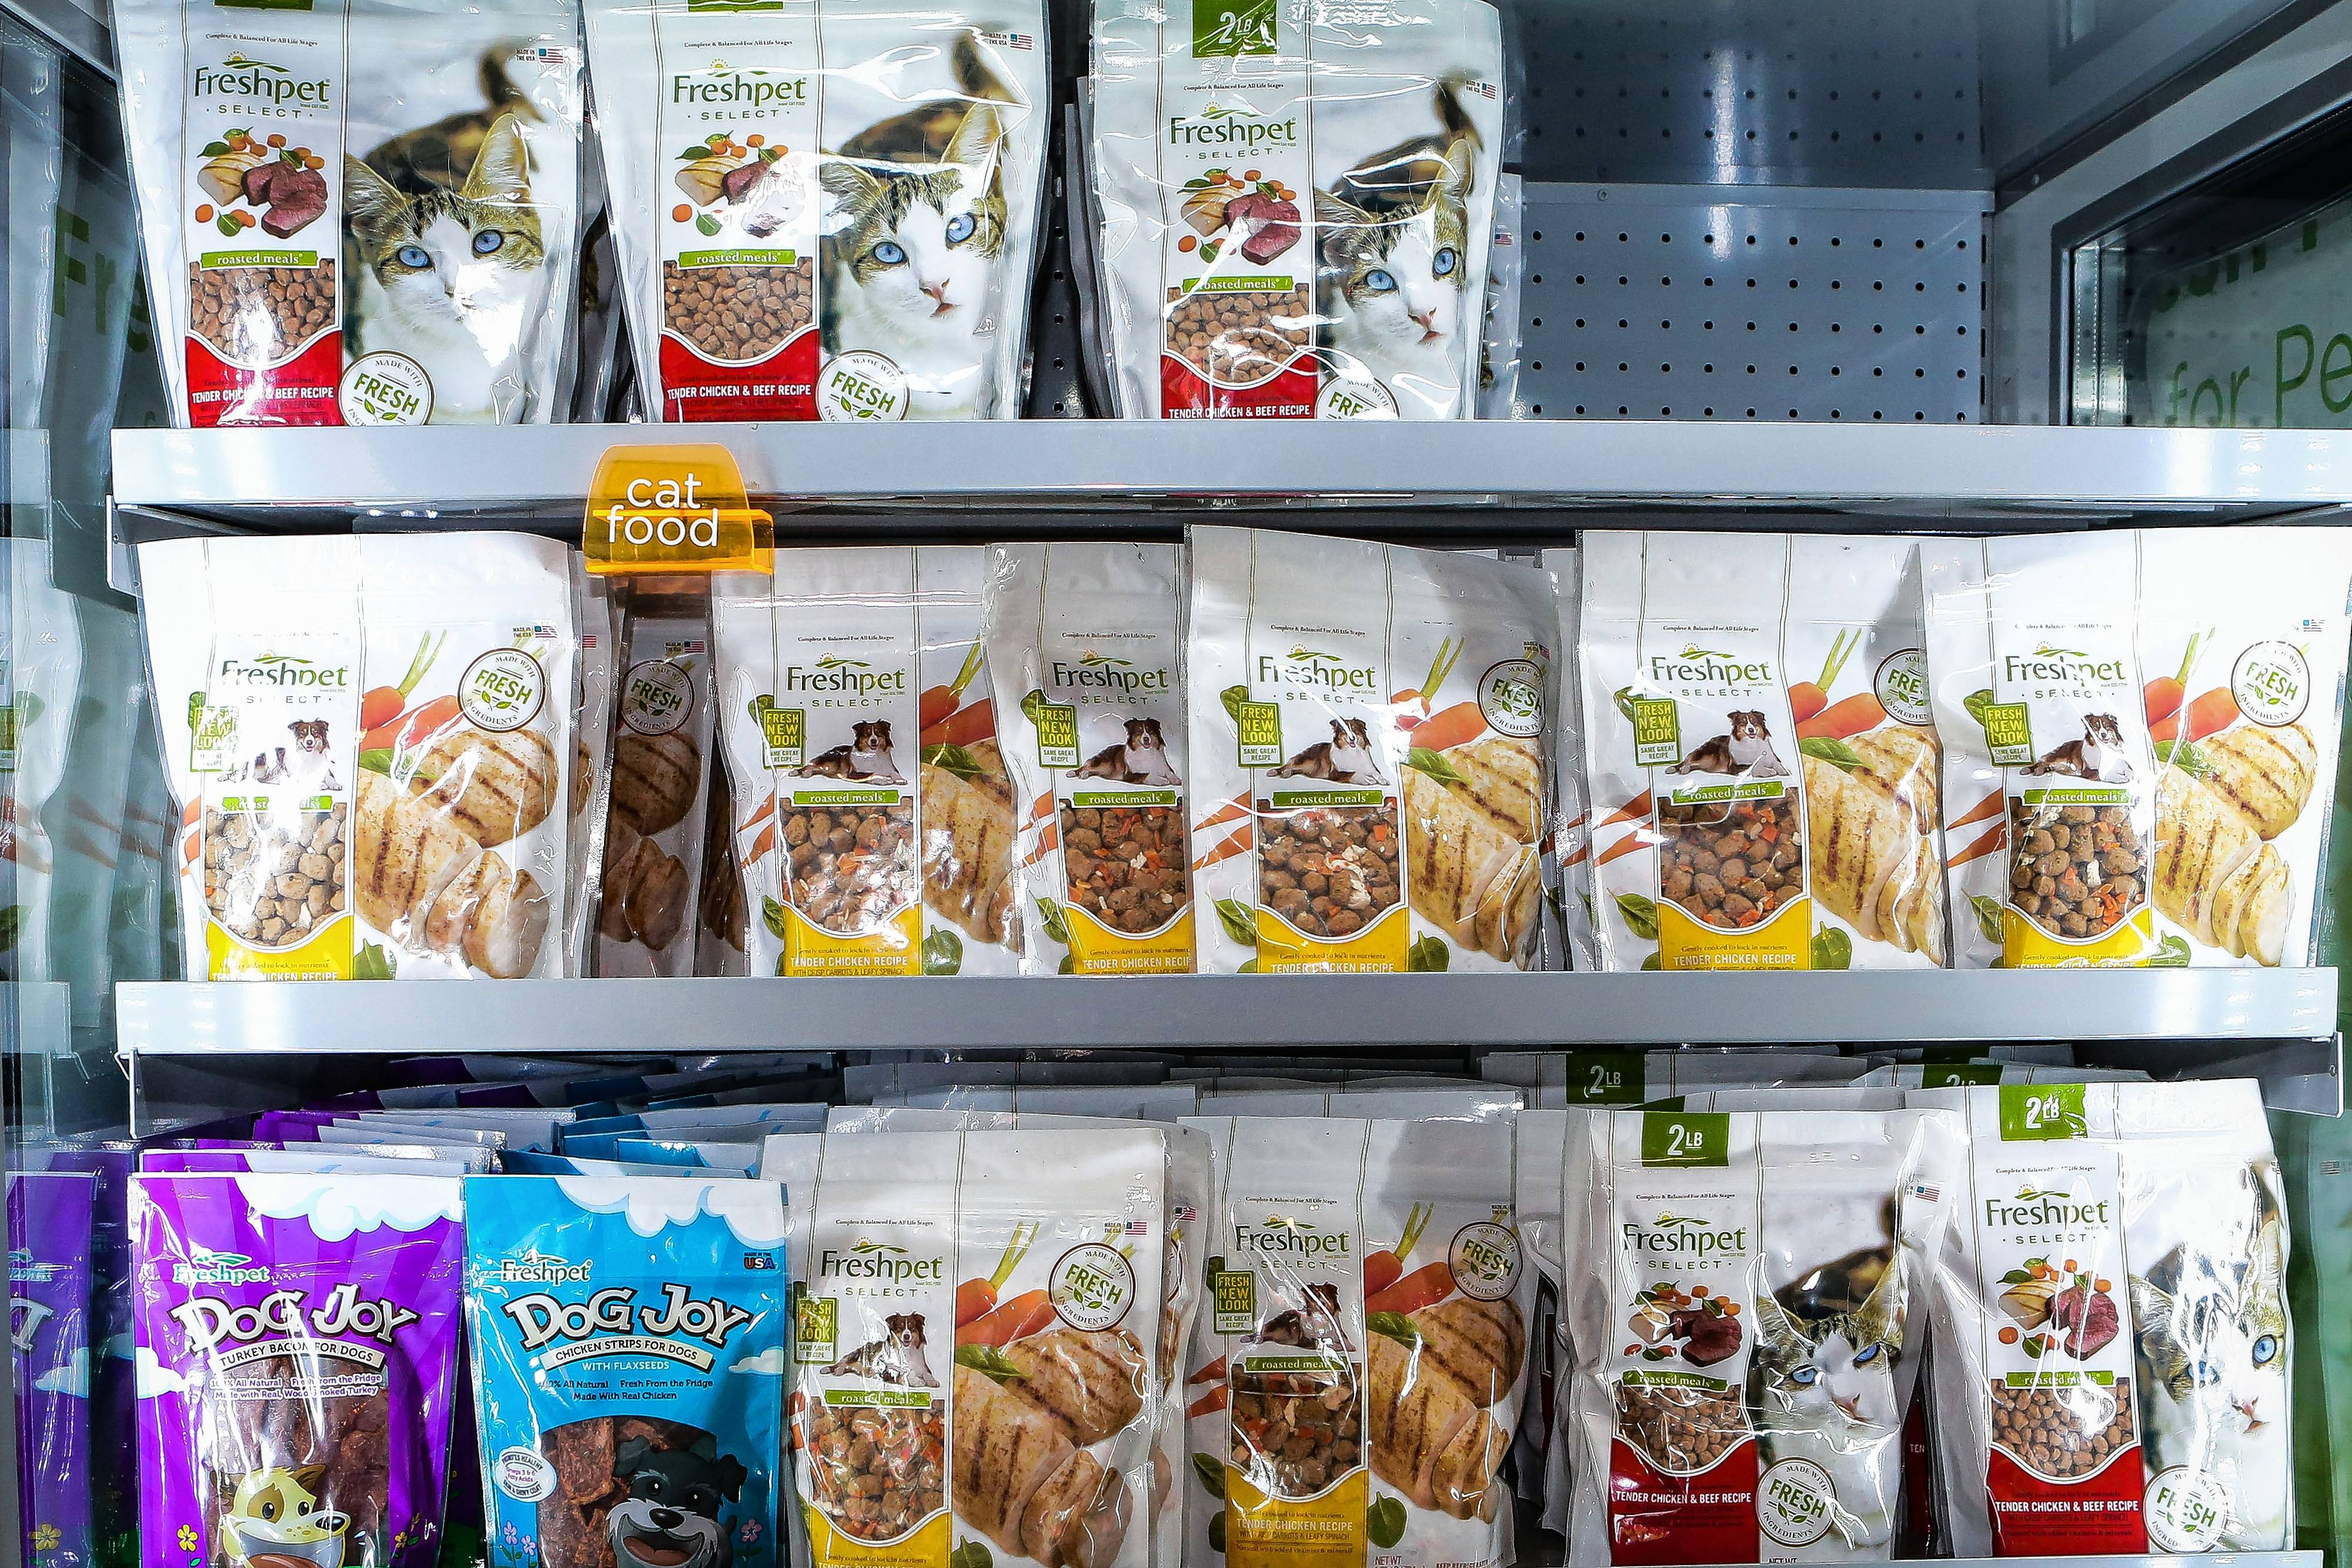 Freshpet is breaking into new territory with its refrigerated dog meals. Shown, food this month at the Freshpet production facility in Bethlehem, Pennsylvania.